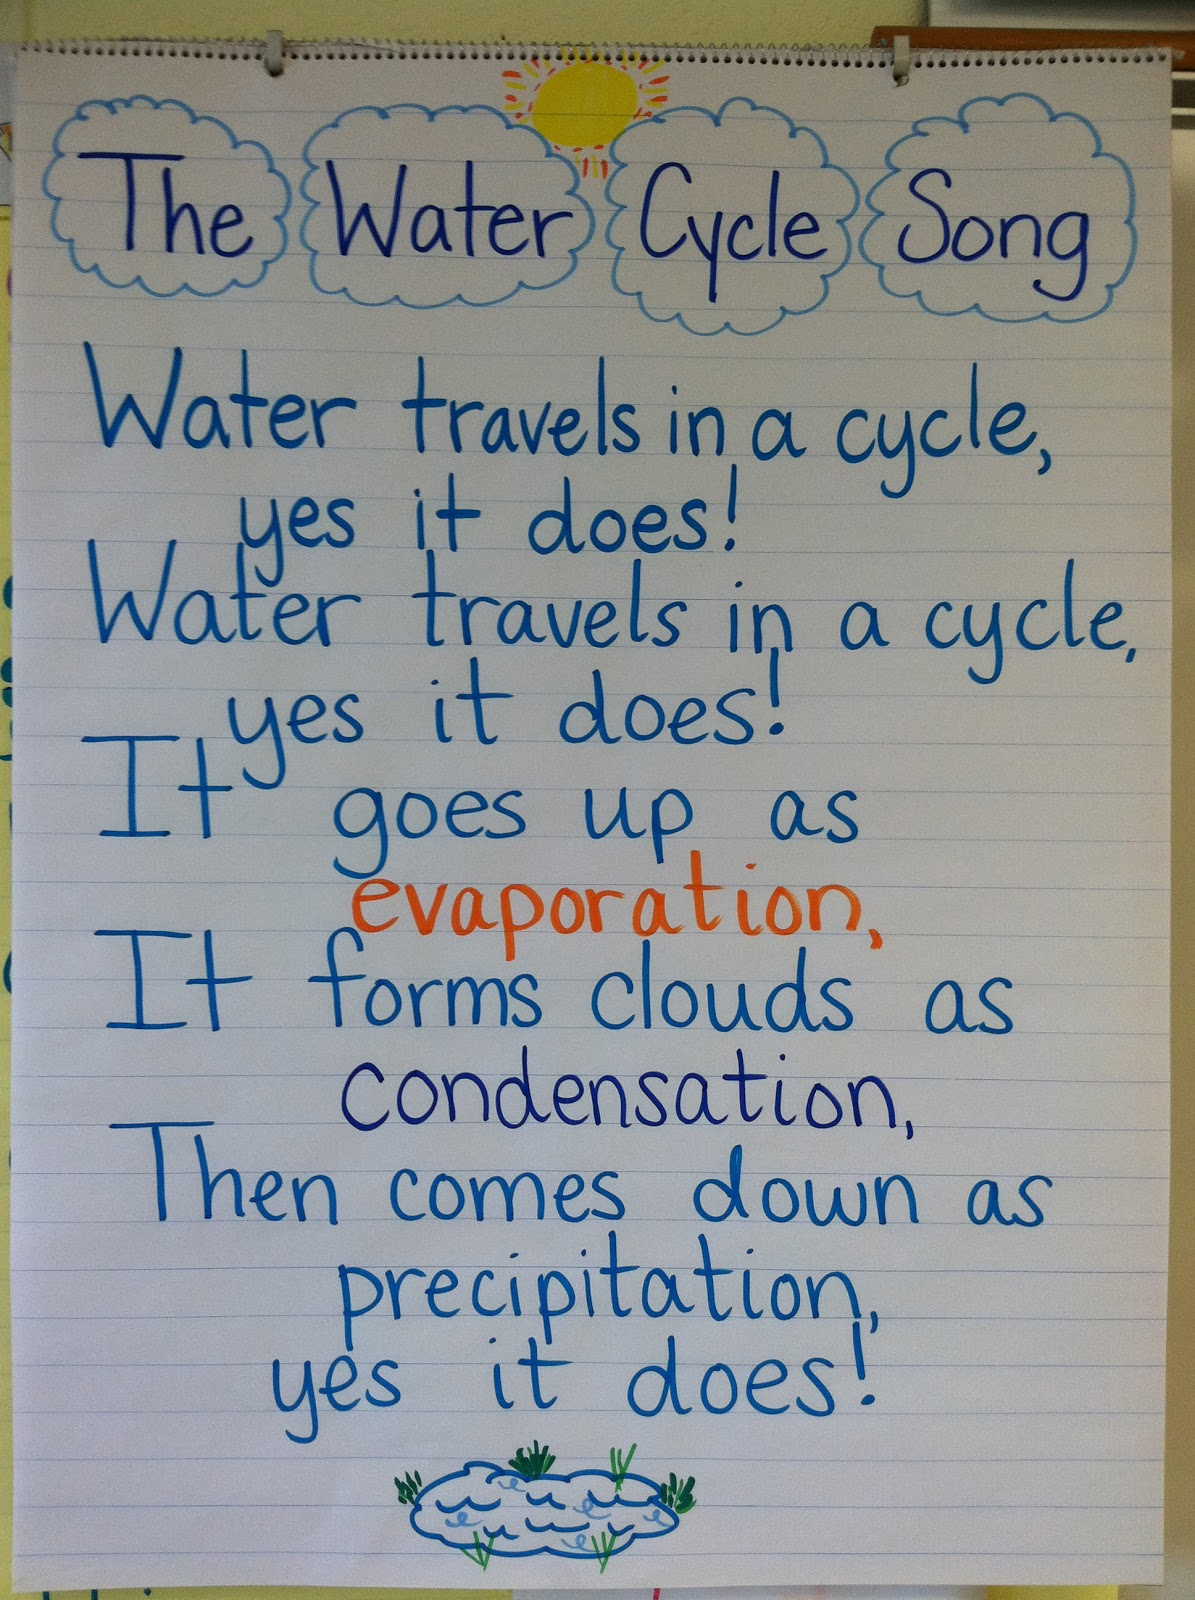 This Friday, we made water cycle bracelets to go along with the song.